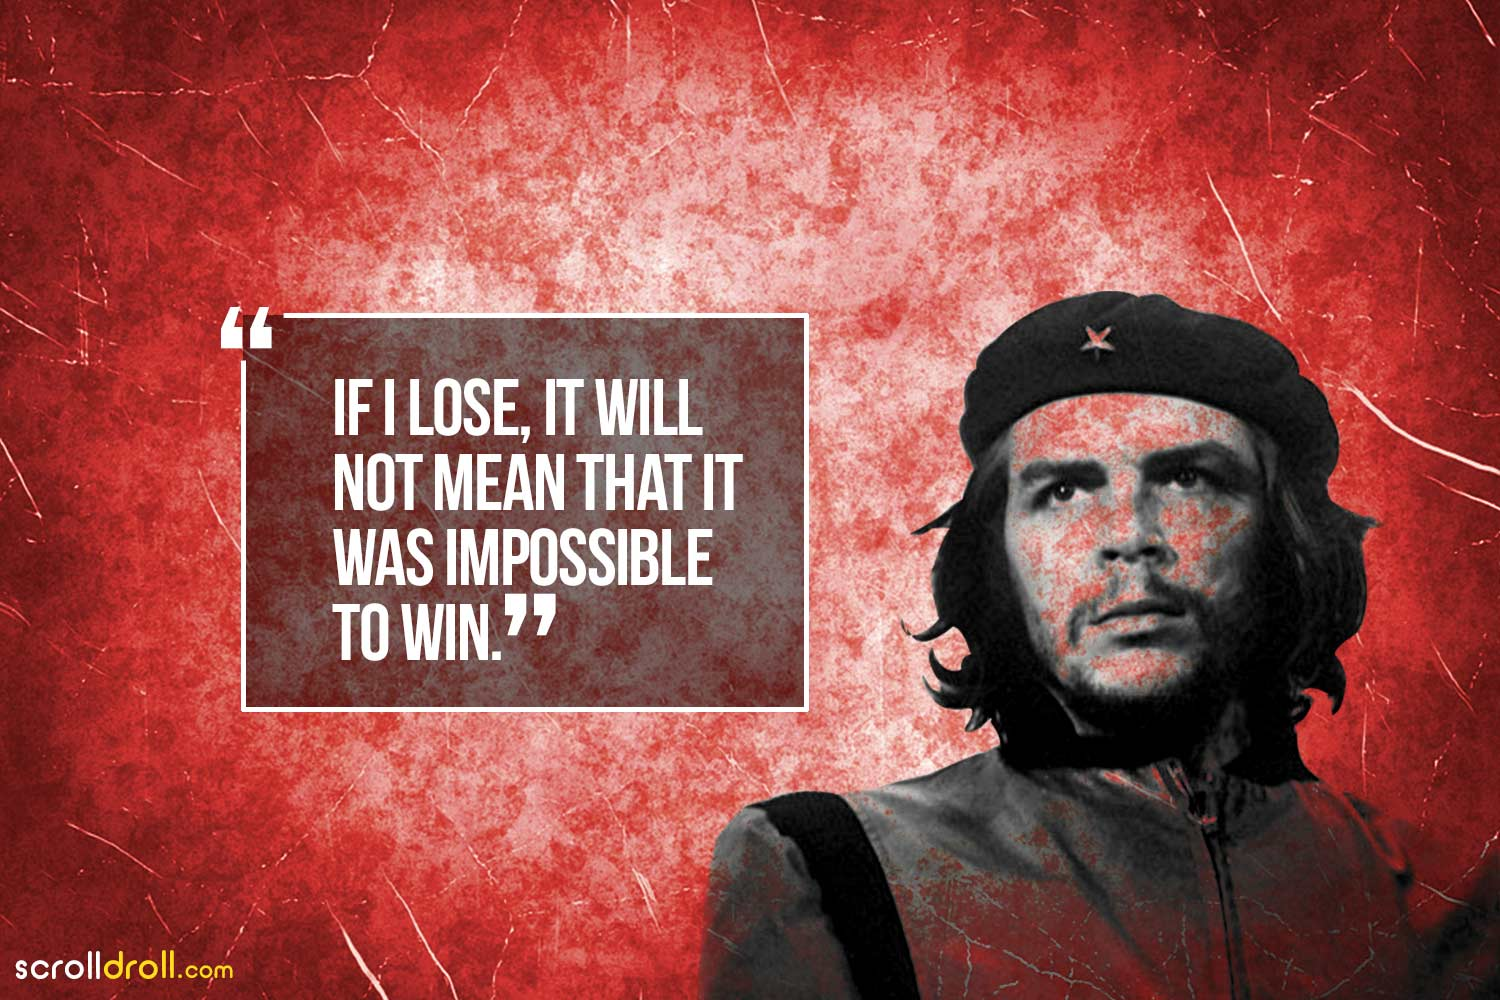 if i lose, it will not mean that it was impossible to win- che guevara